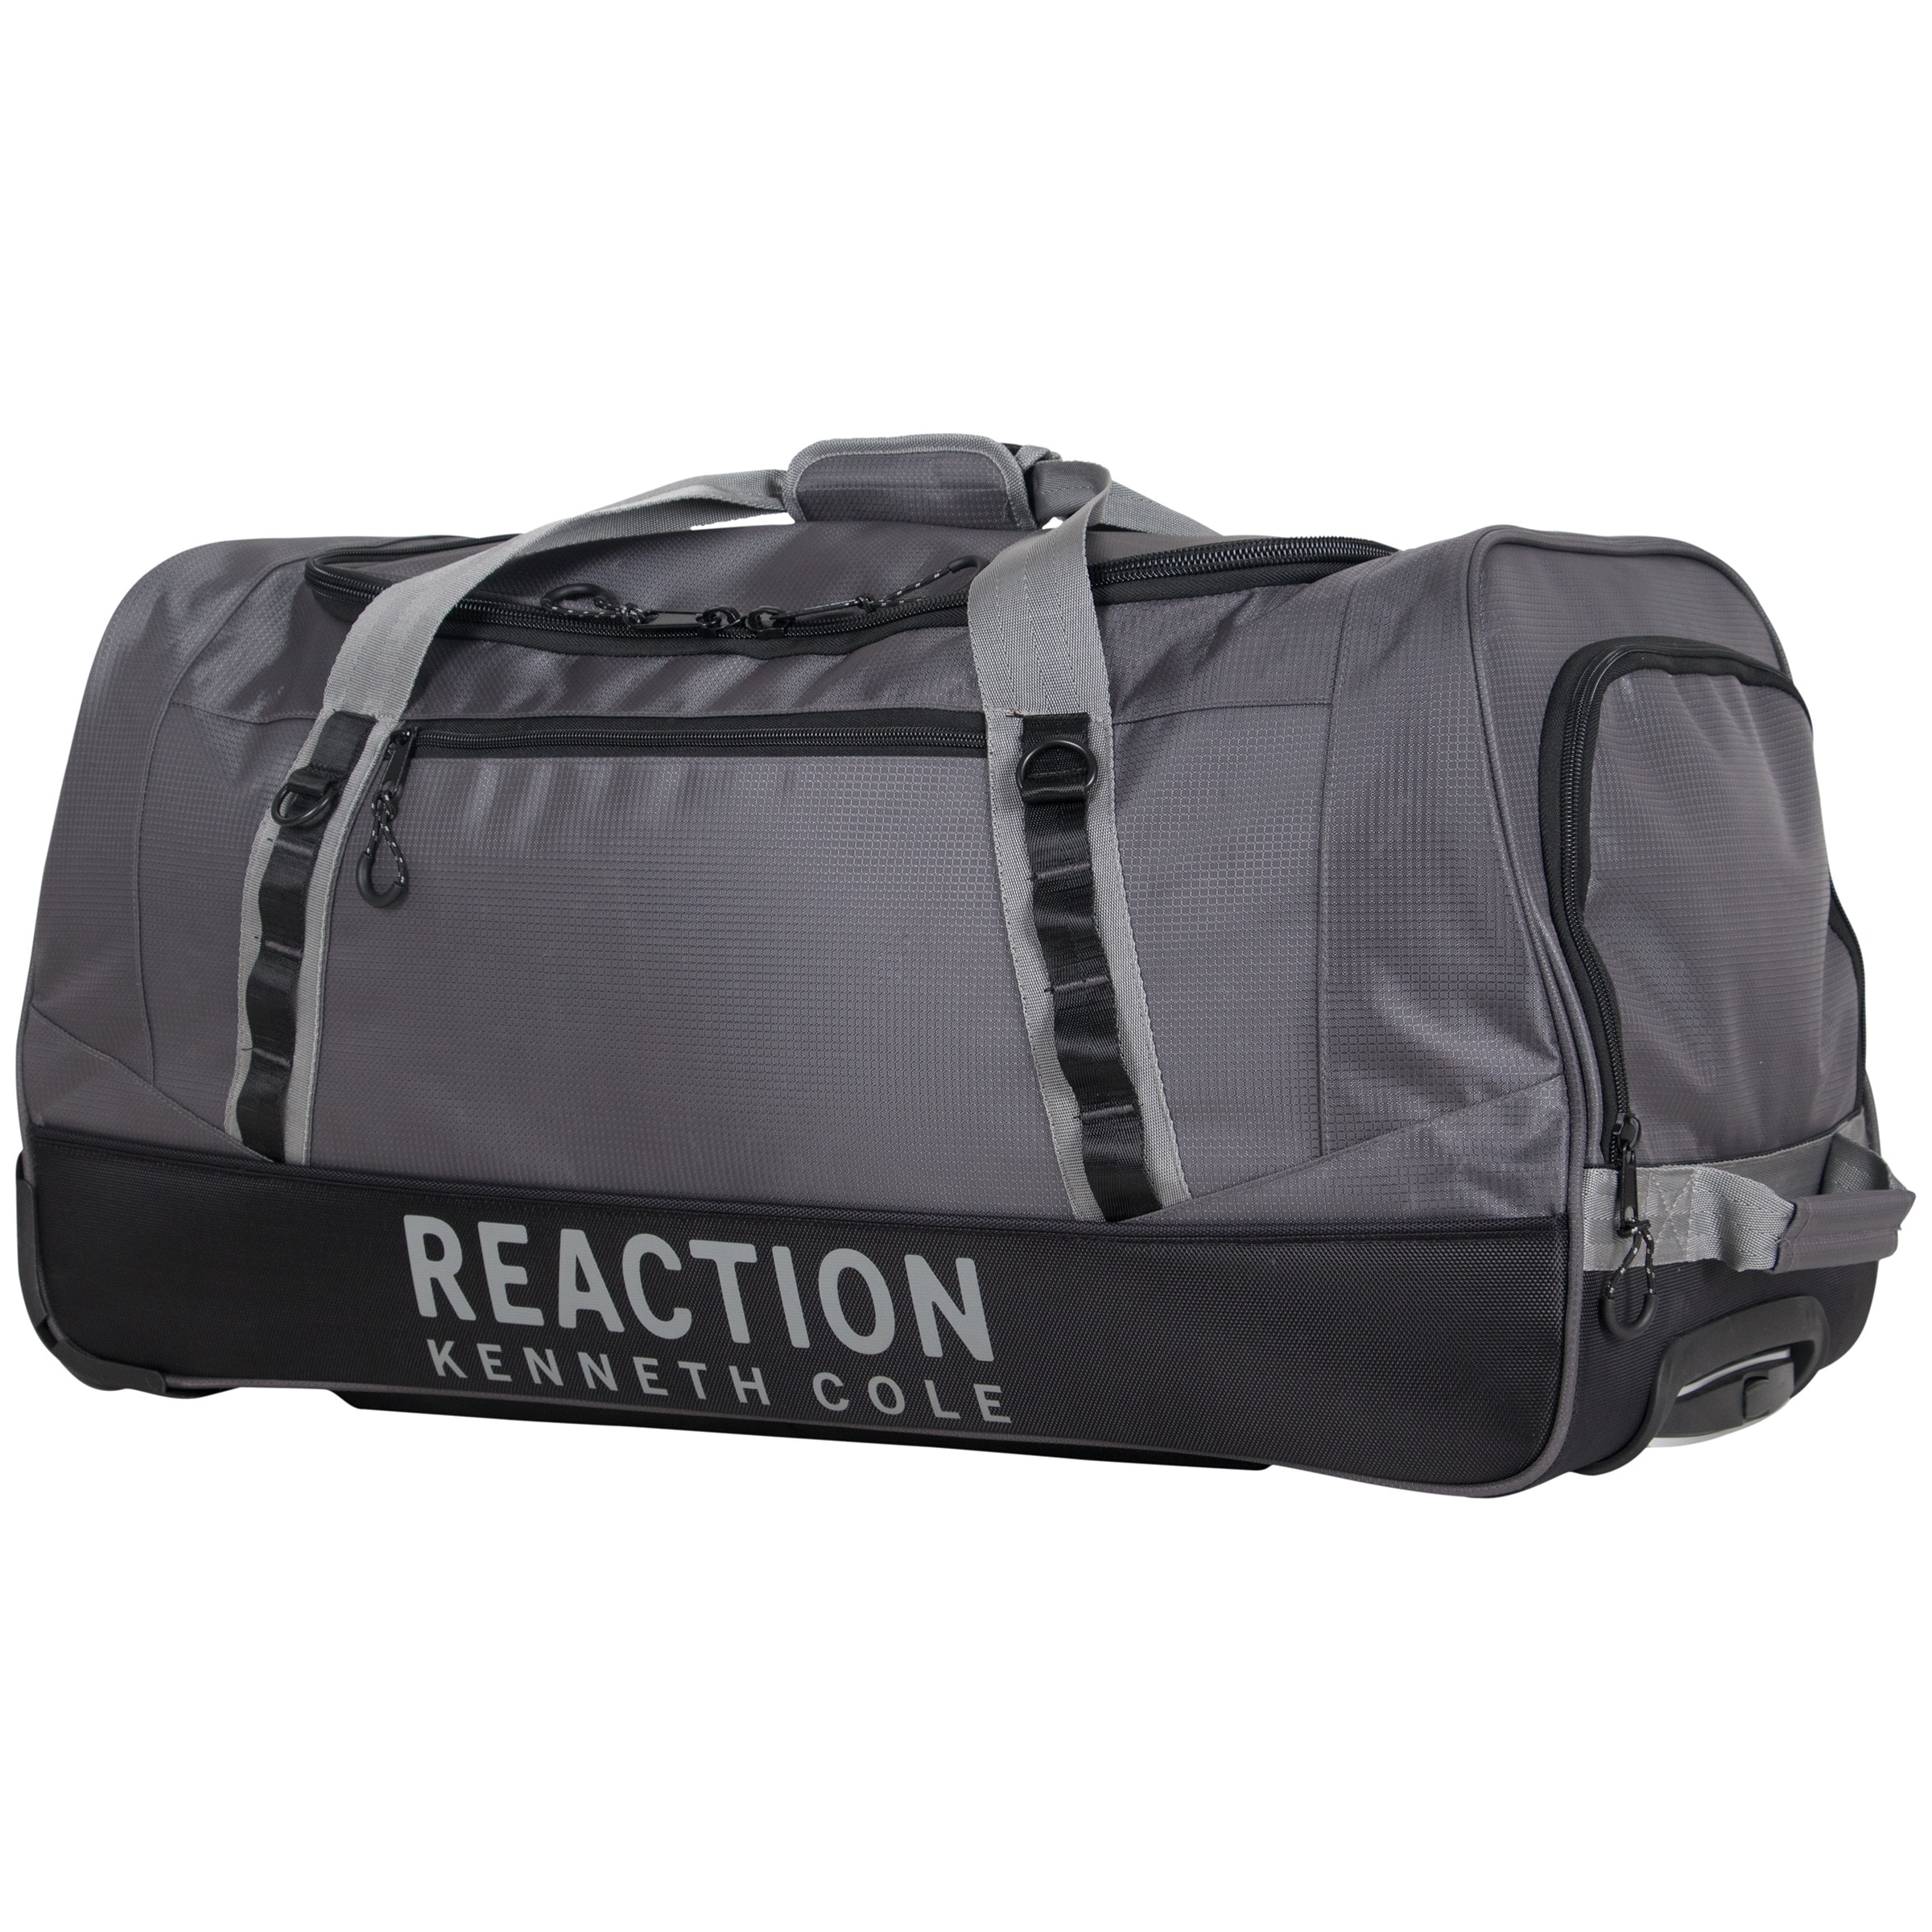 a49c5987a6 Shop Kenneth Cole Reaction 30-inch Lightweight Large Capacity 2-Wheel  Rolling Duffel Bag - Free Shipping Today - Overstock - 20374970